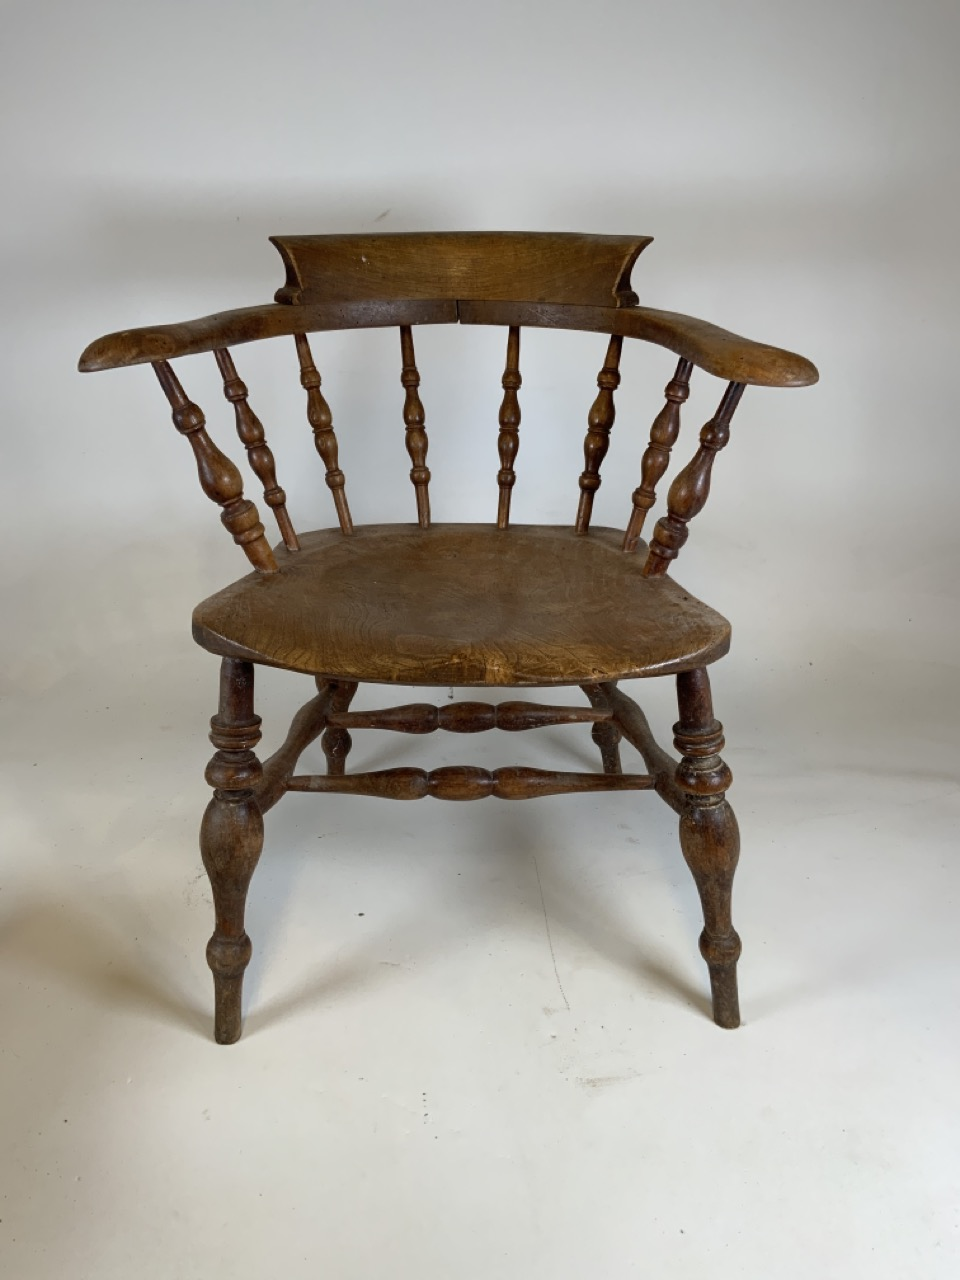 A Victorian smokers bow arm chair with curved top rail and turned spindles with saddle shaped seat - Image 2 of 10